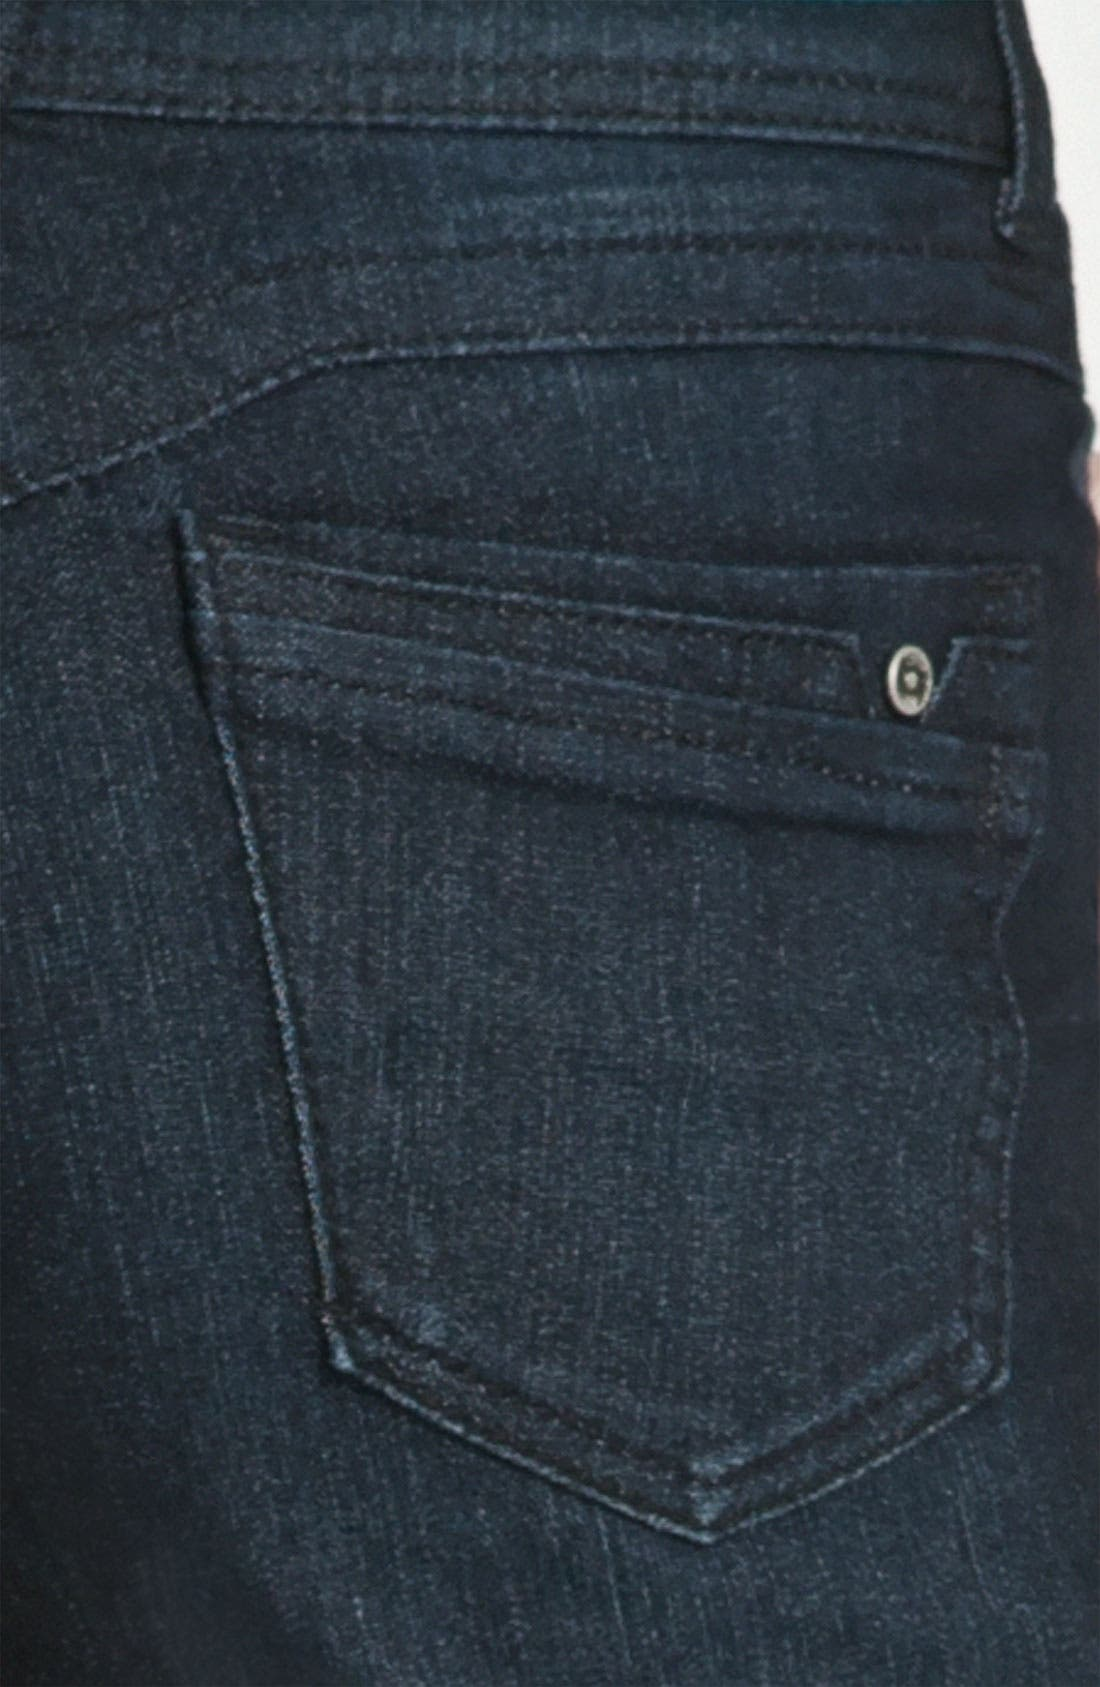 Alternate Image 3  - Jolt 'Pick Me Up' Skinny Jeans (Juniors)